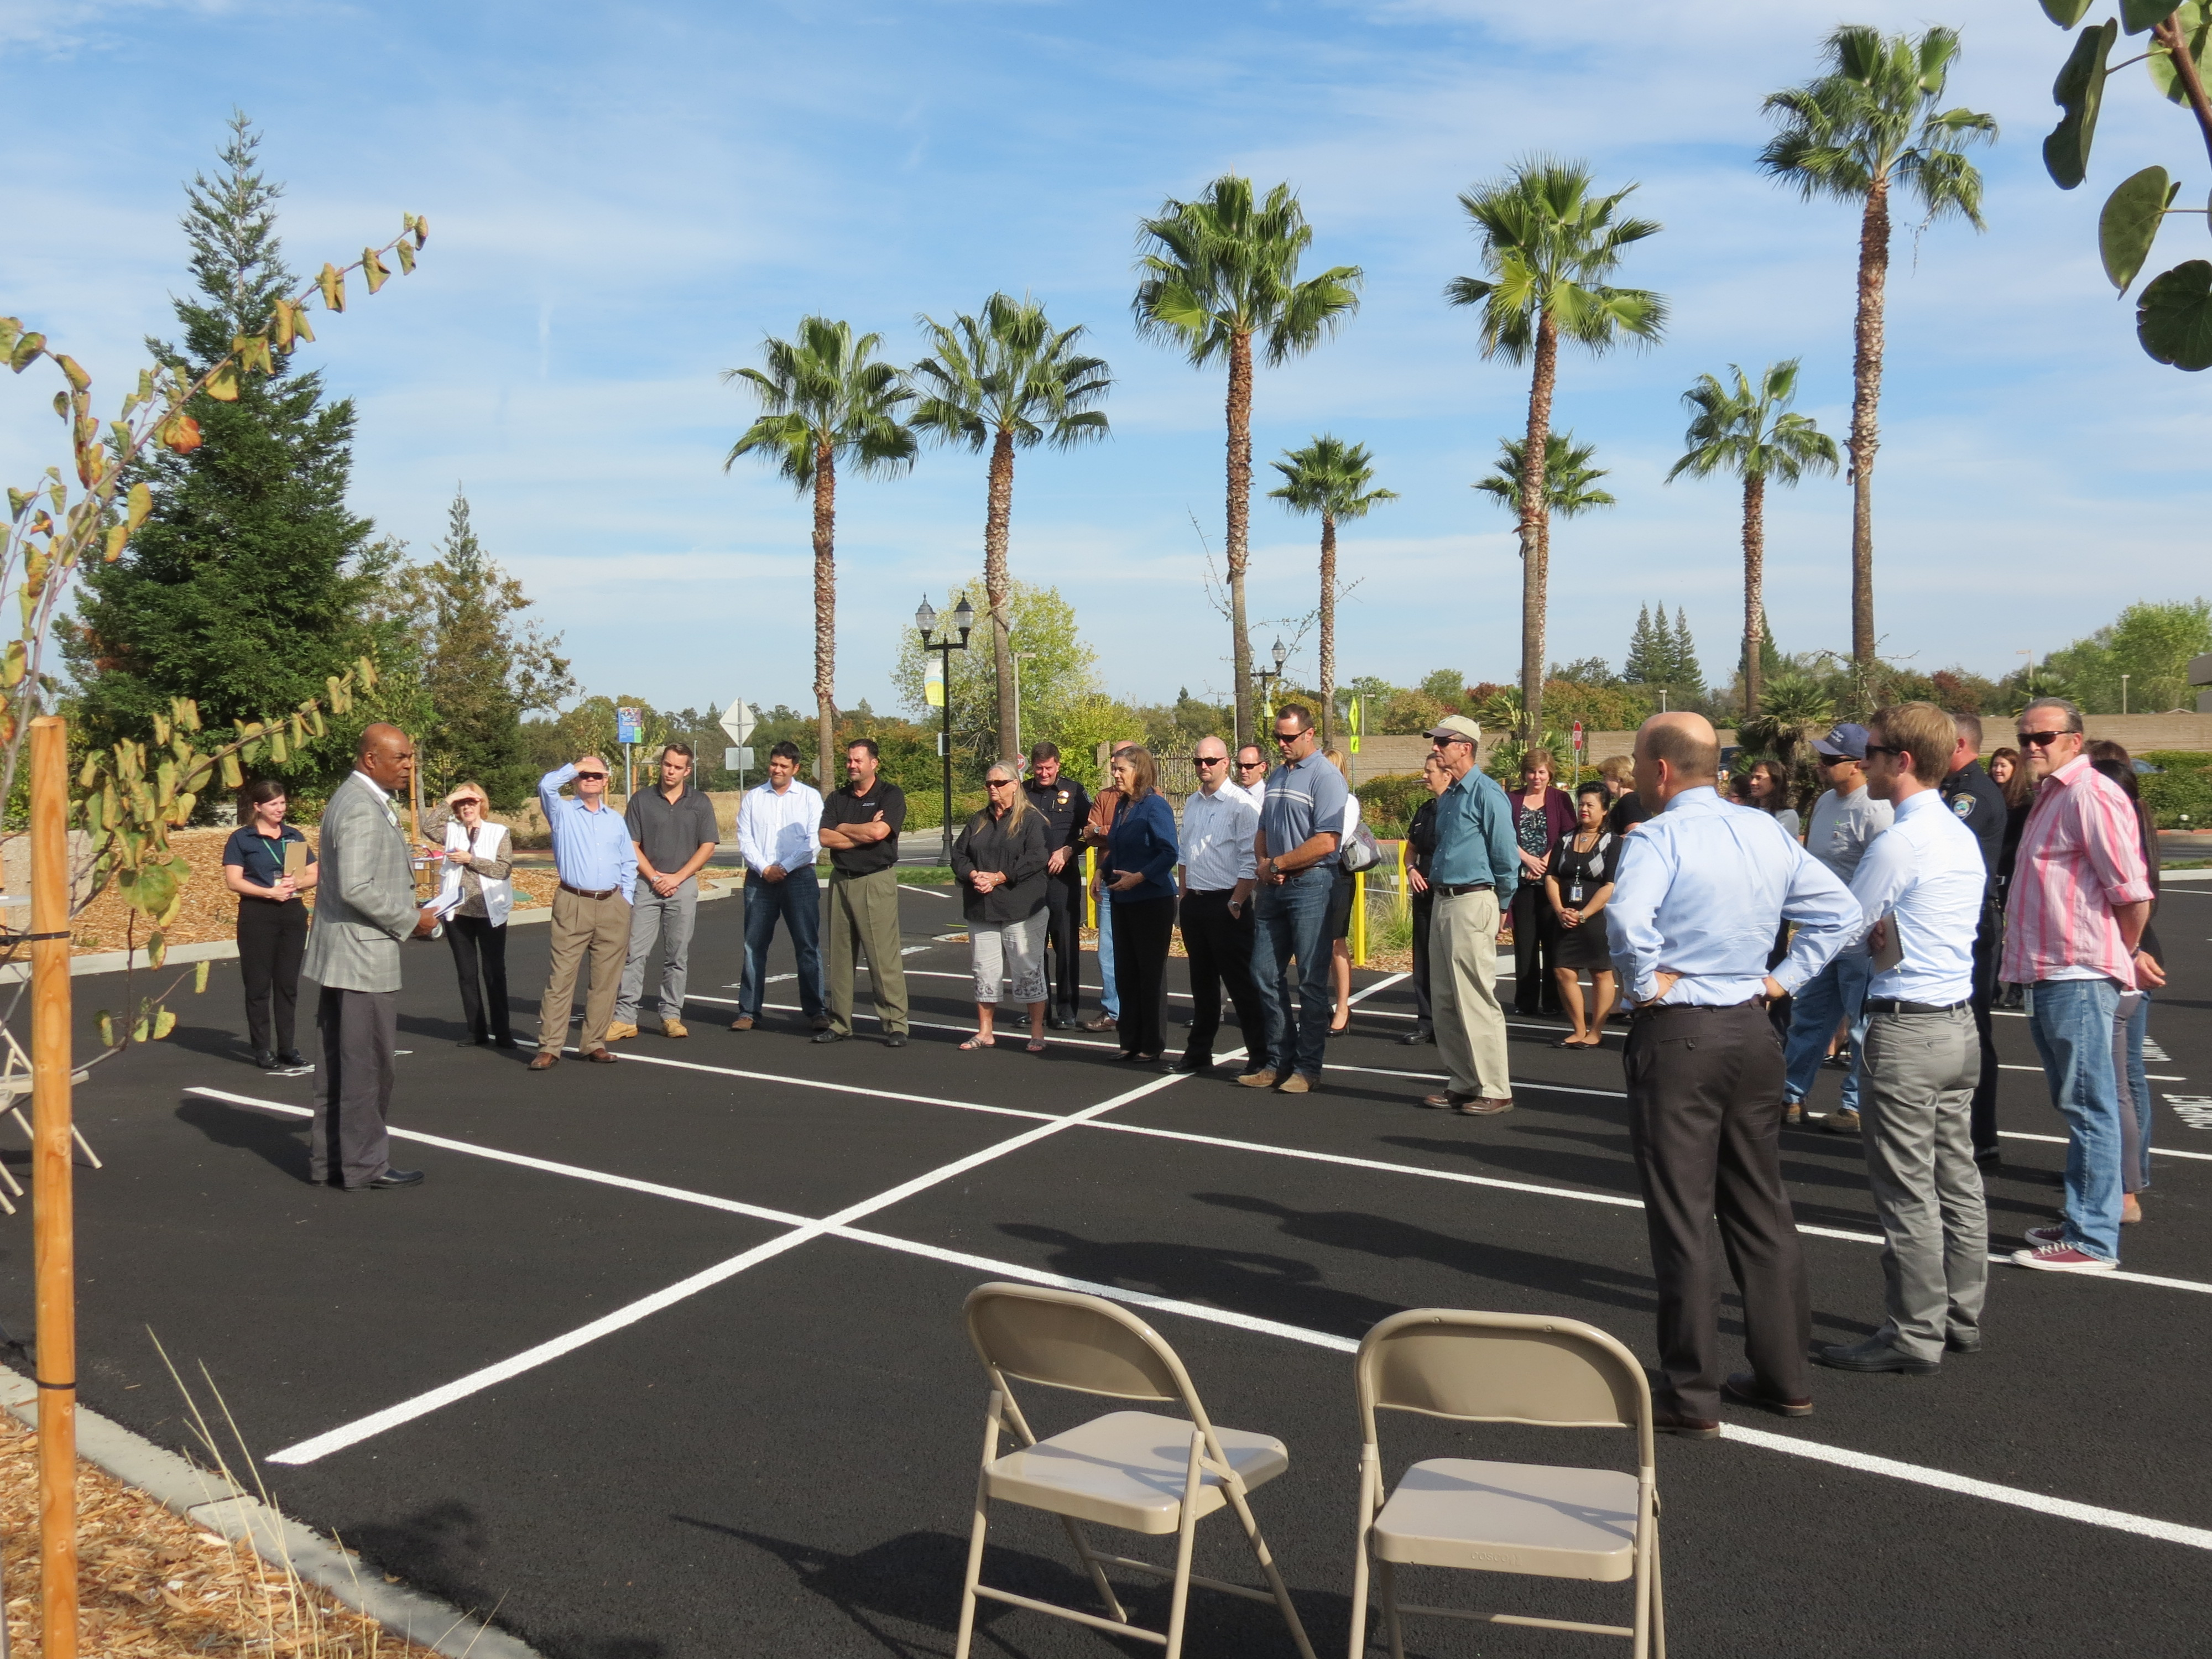 Gathering for the ribbon cutting ceremony